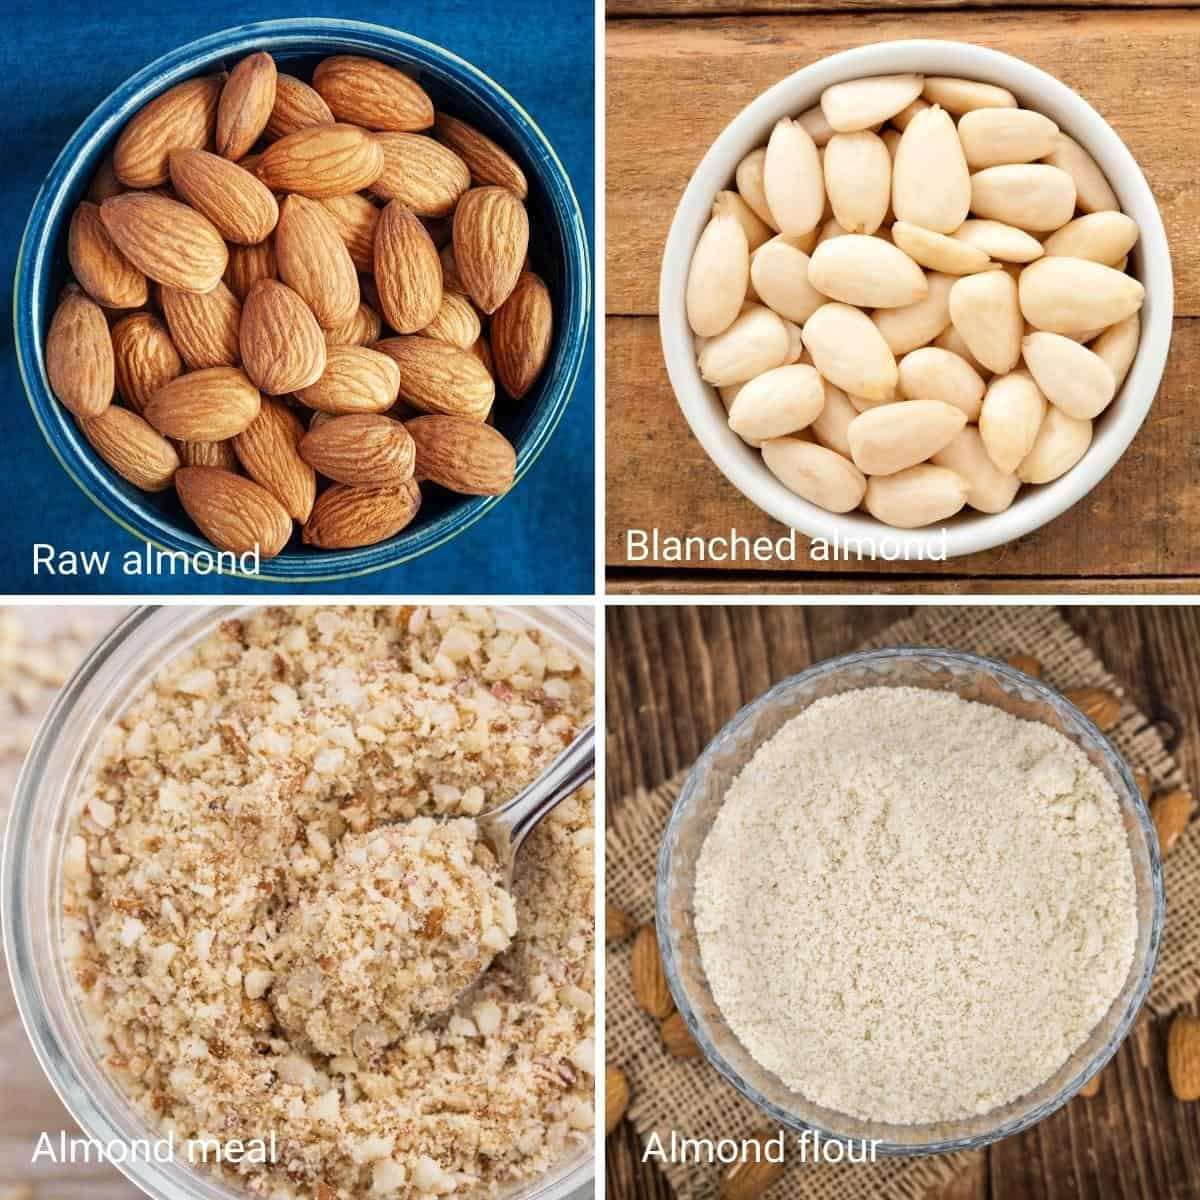 Collage of almonds and almonds meal and flour.